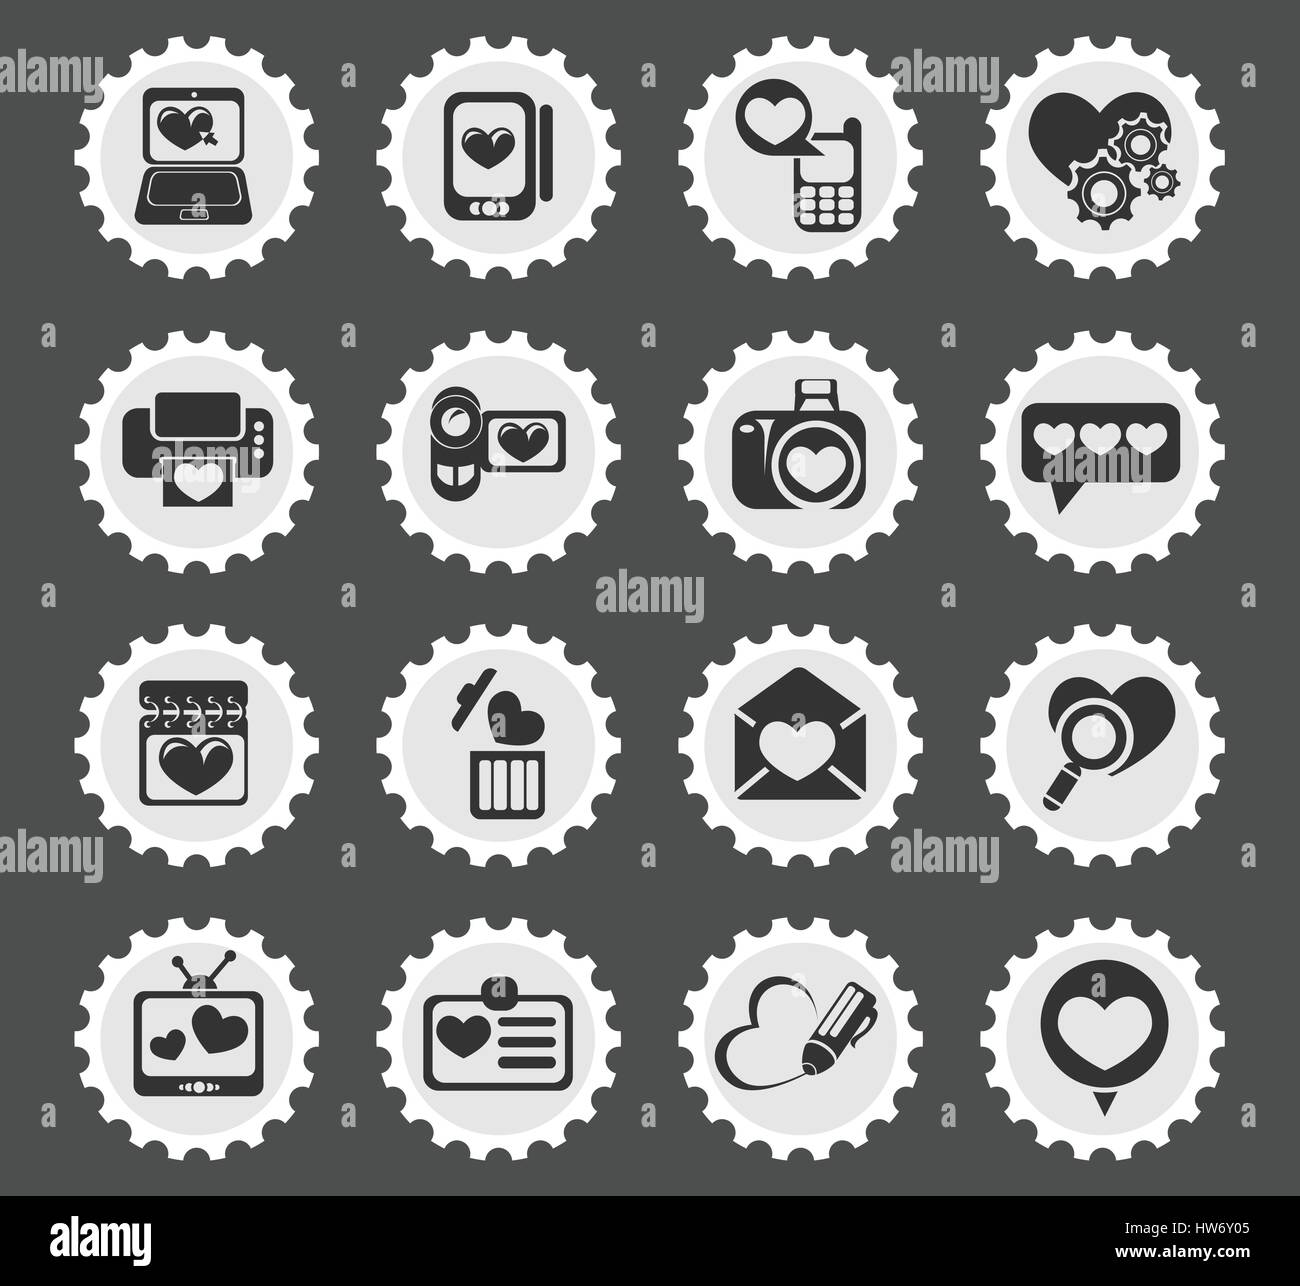 Love Messages Simply Symbols For Web And User Interface Stock Vector